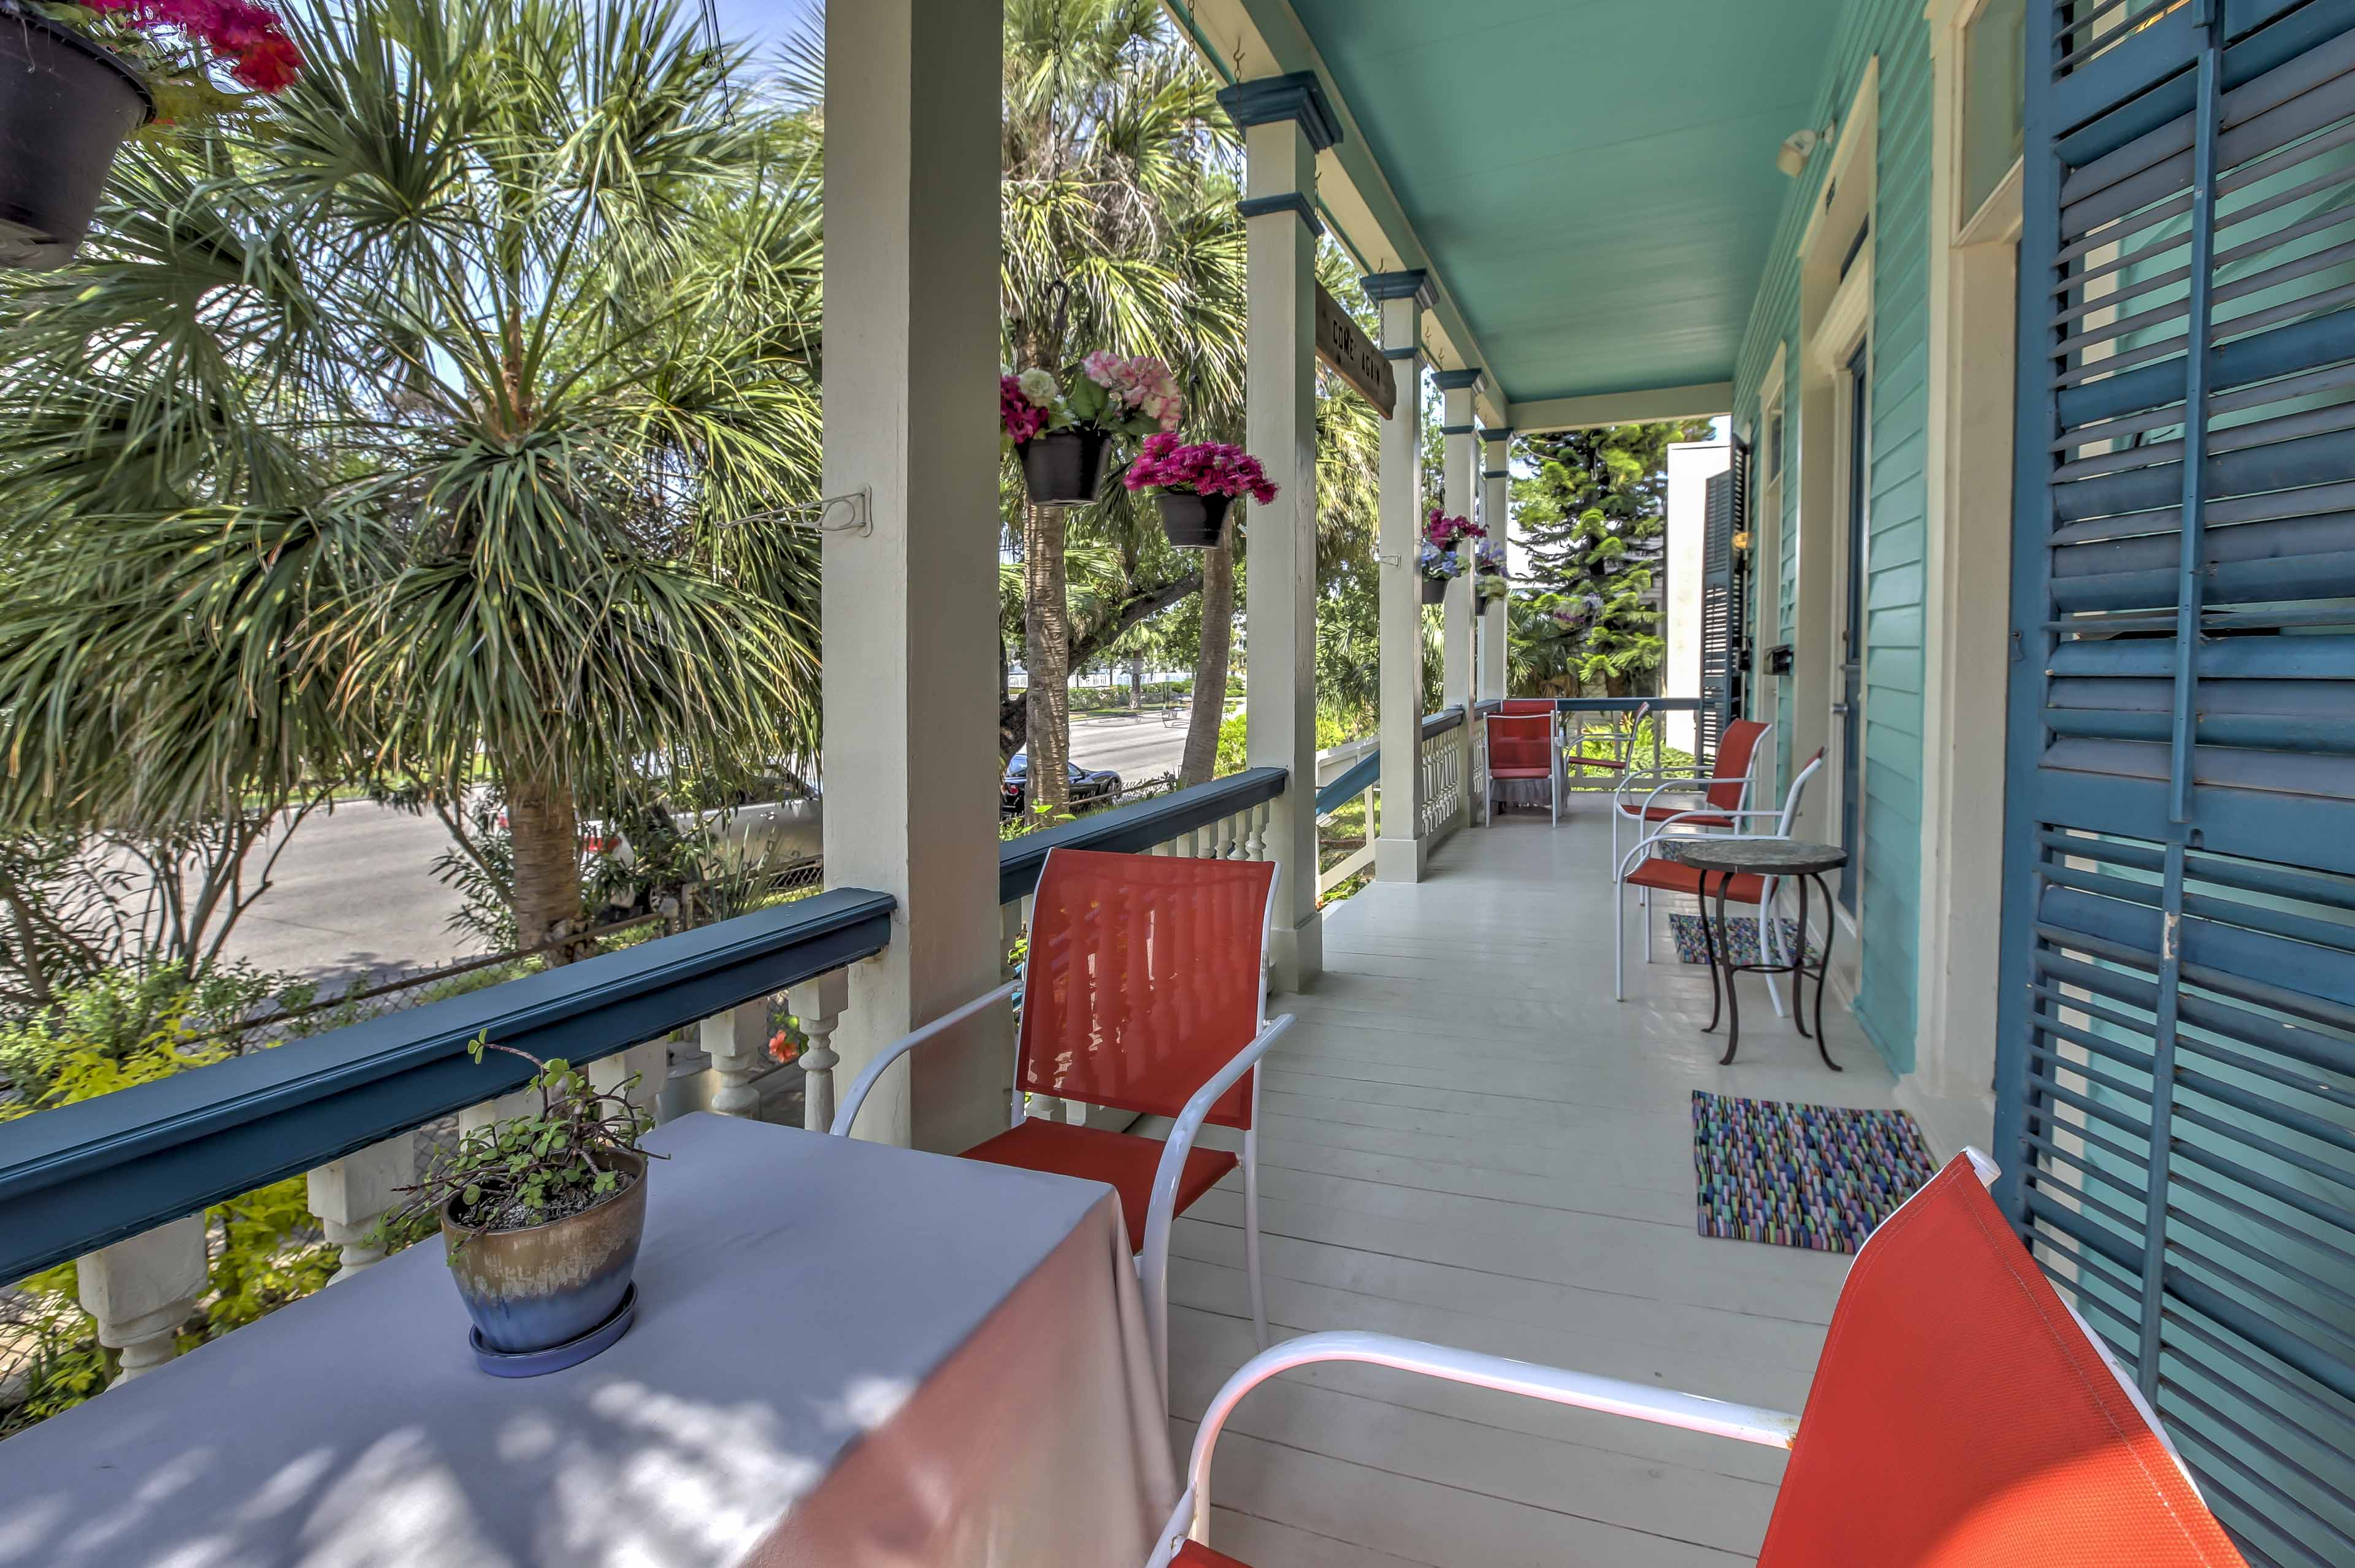 The apartment is located in Galveston's oldest and most charming neighborhoods.